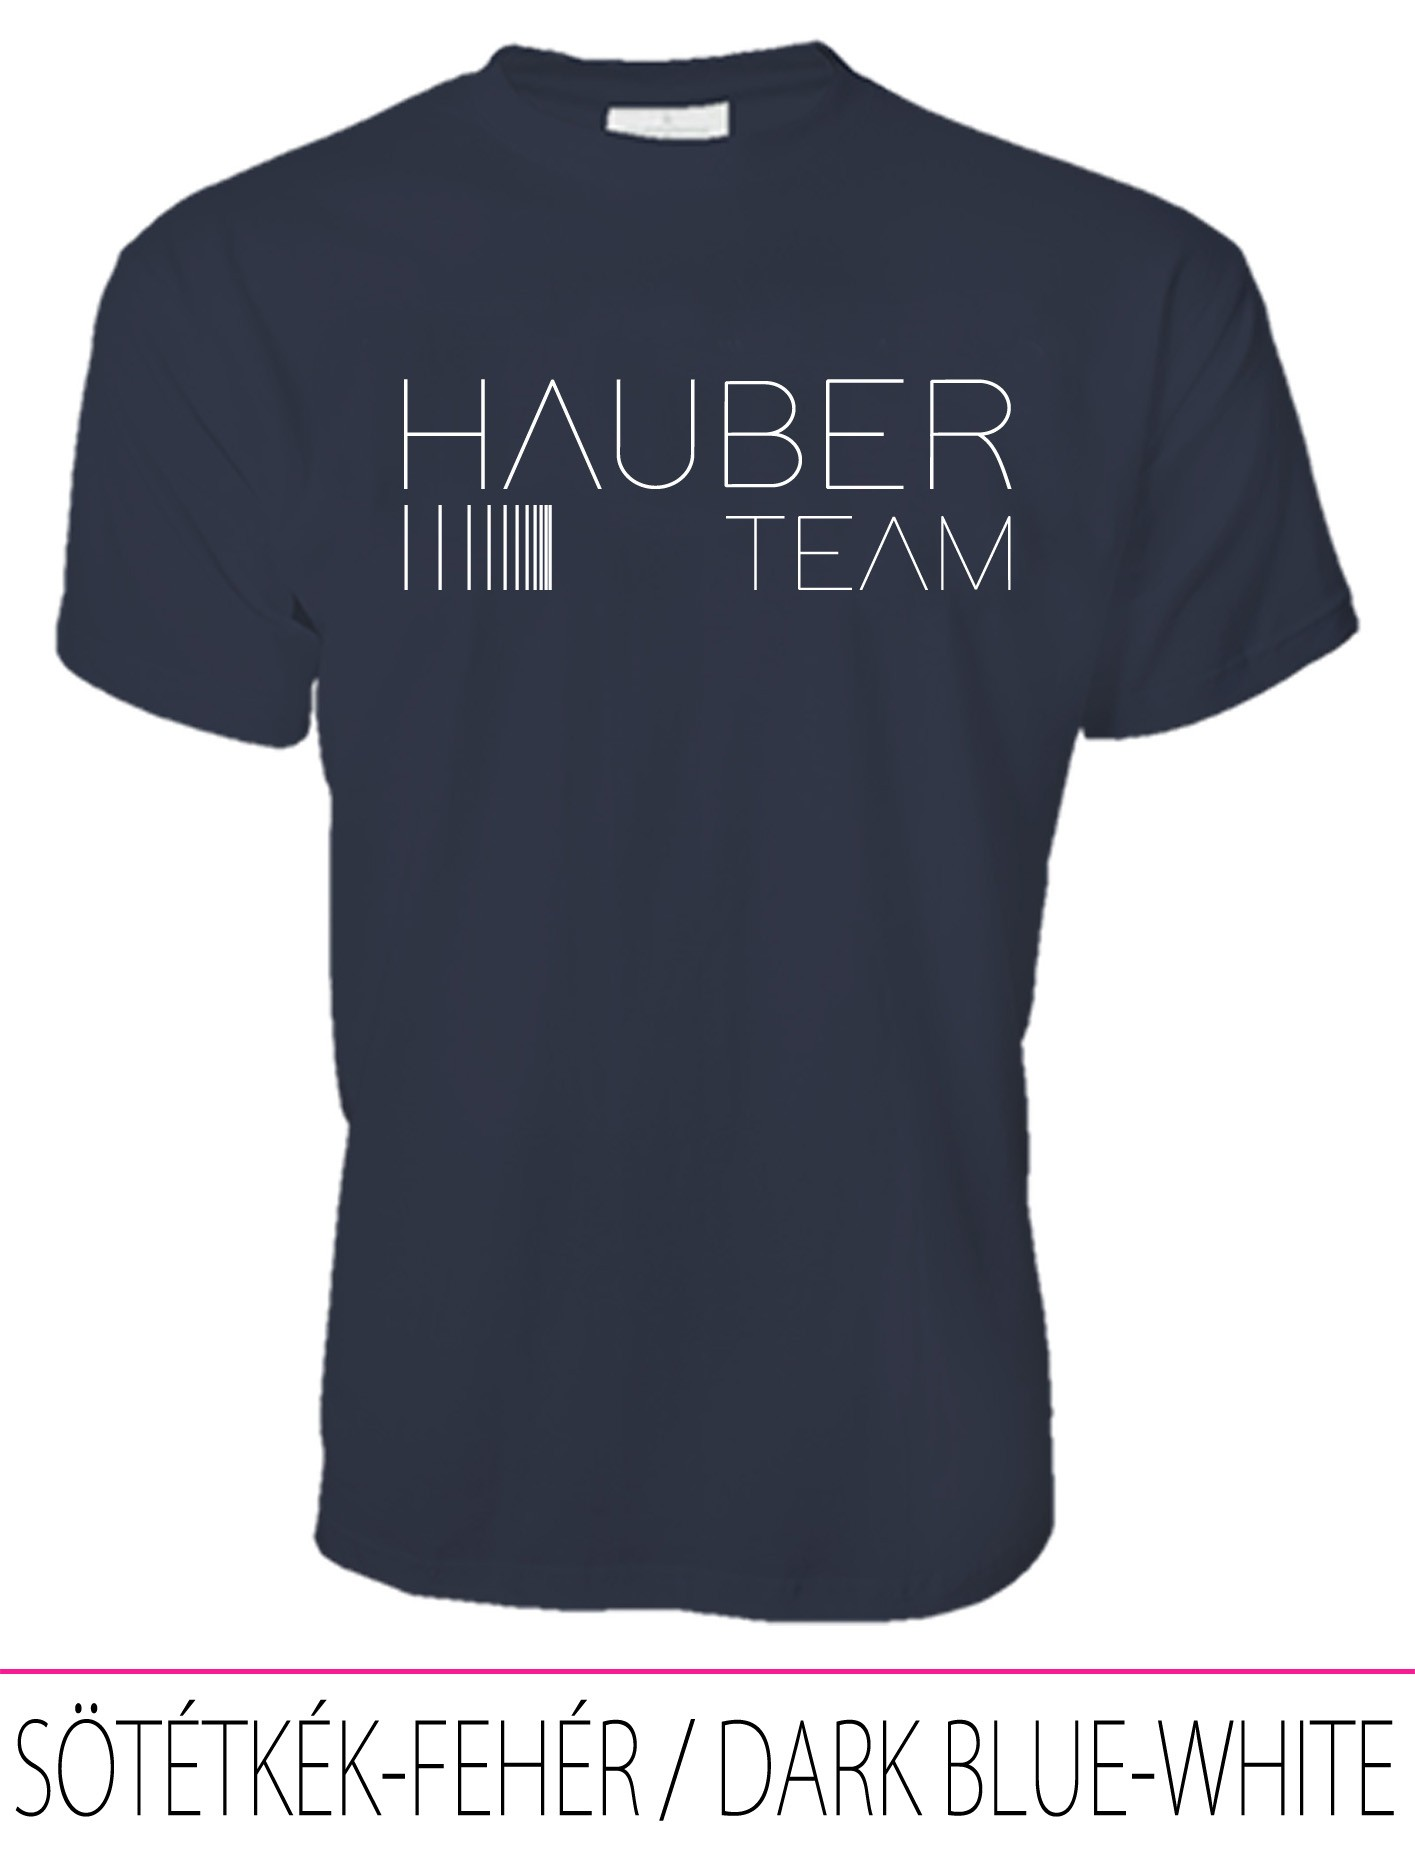 MEN CREW NECK T-SHIRT / HAUBER TEAM DARK BLUE-WHITE